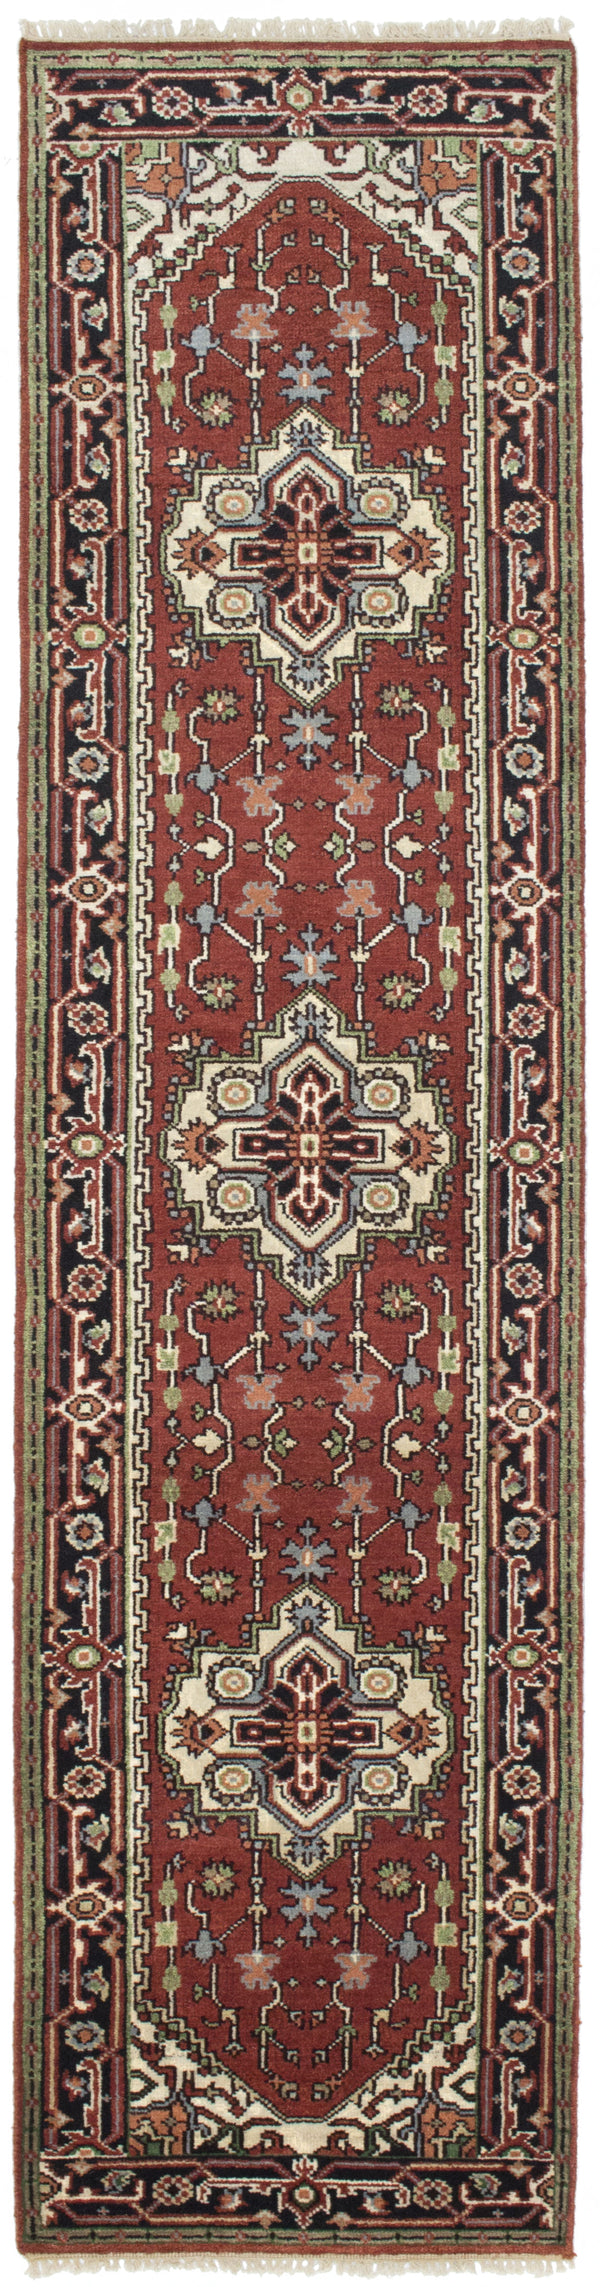 "Hand-knotted Indian Floral  Traditional Serapi-Heritage Runner rug  Dark Orange 2'6 x 10'4"" """